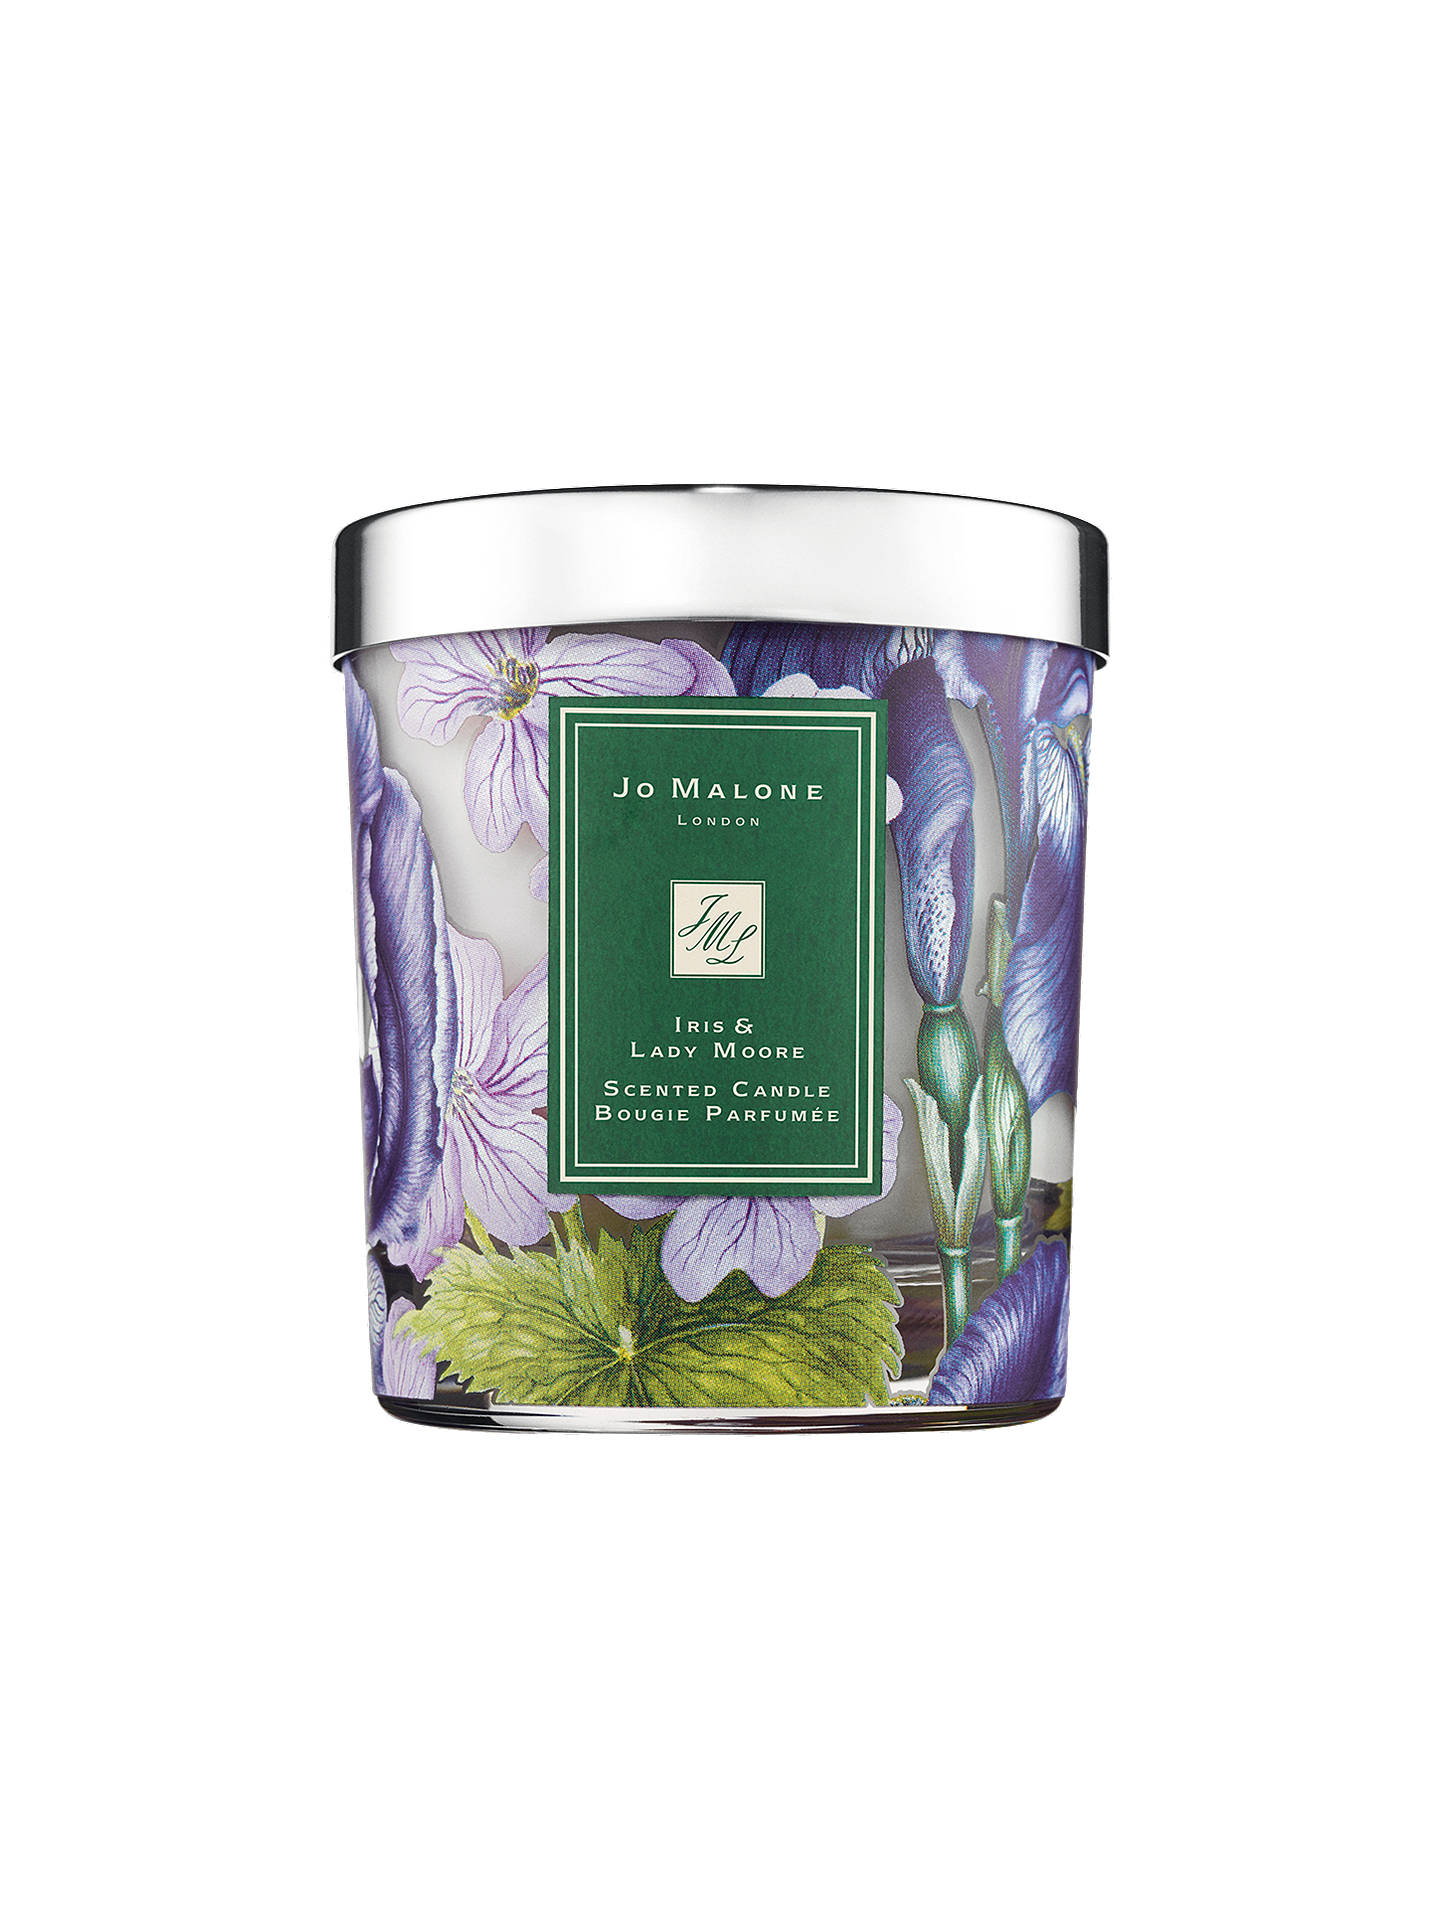 Jo Malone London Iris & Lady Moore Scented Candle, 200g at John ...